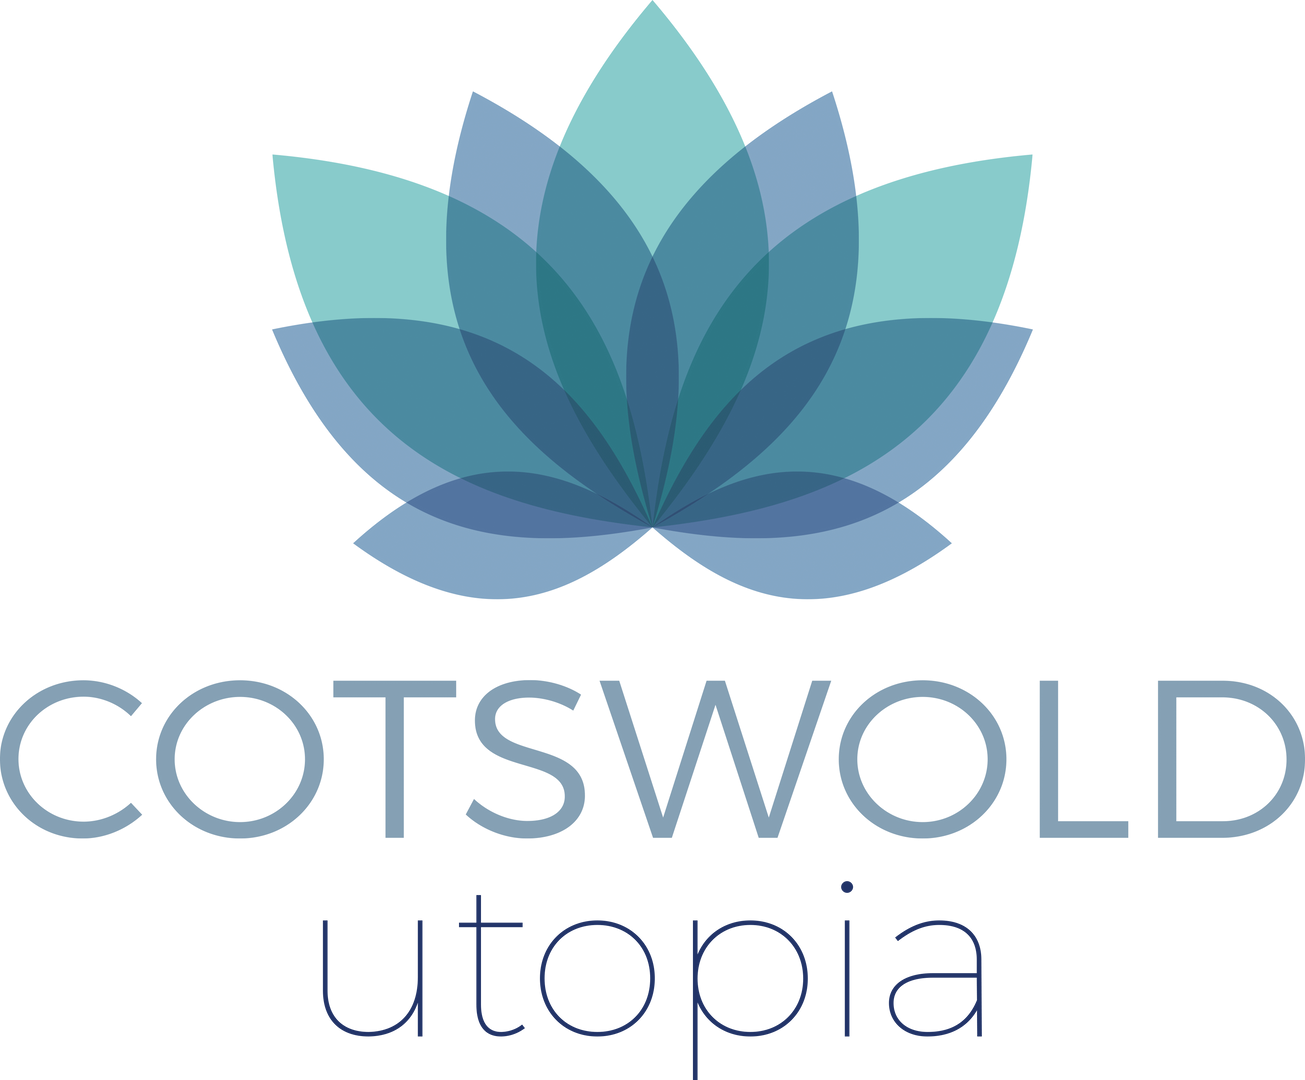 cotswold-utopia.ai.png